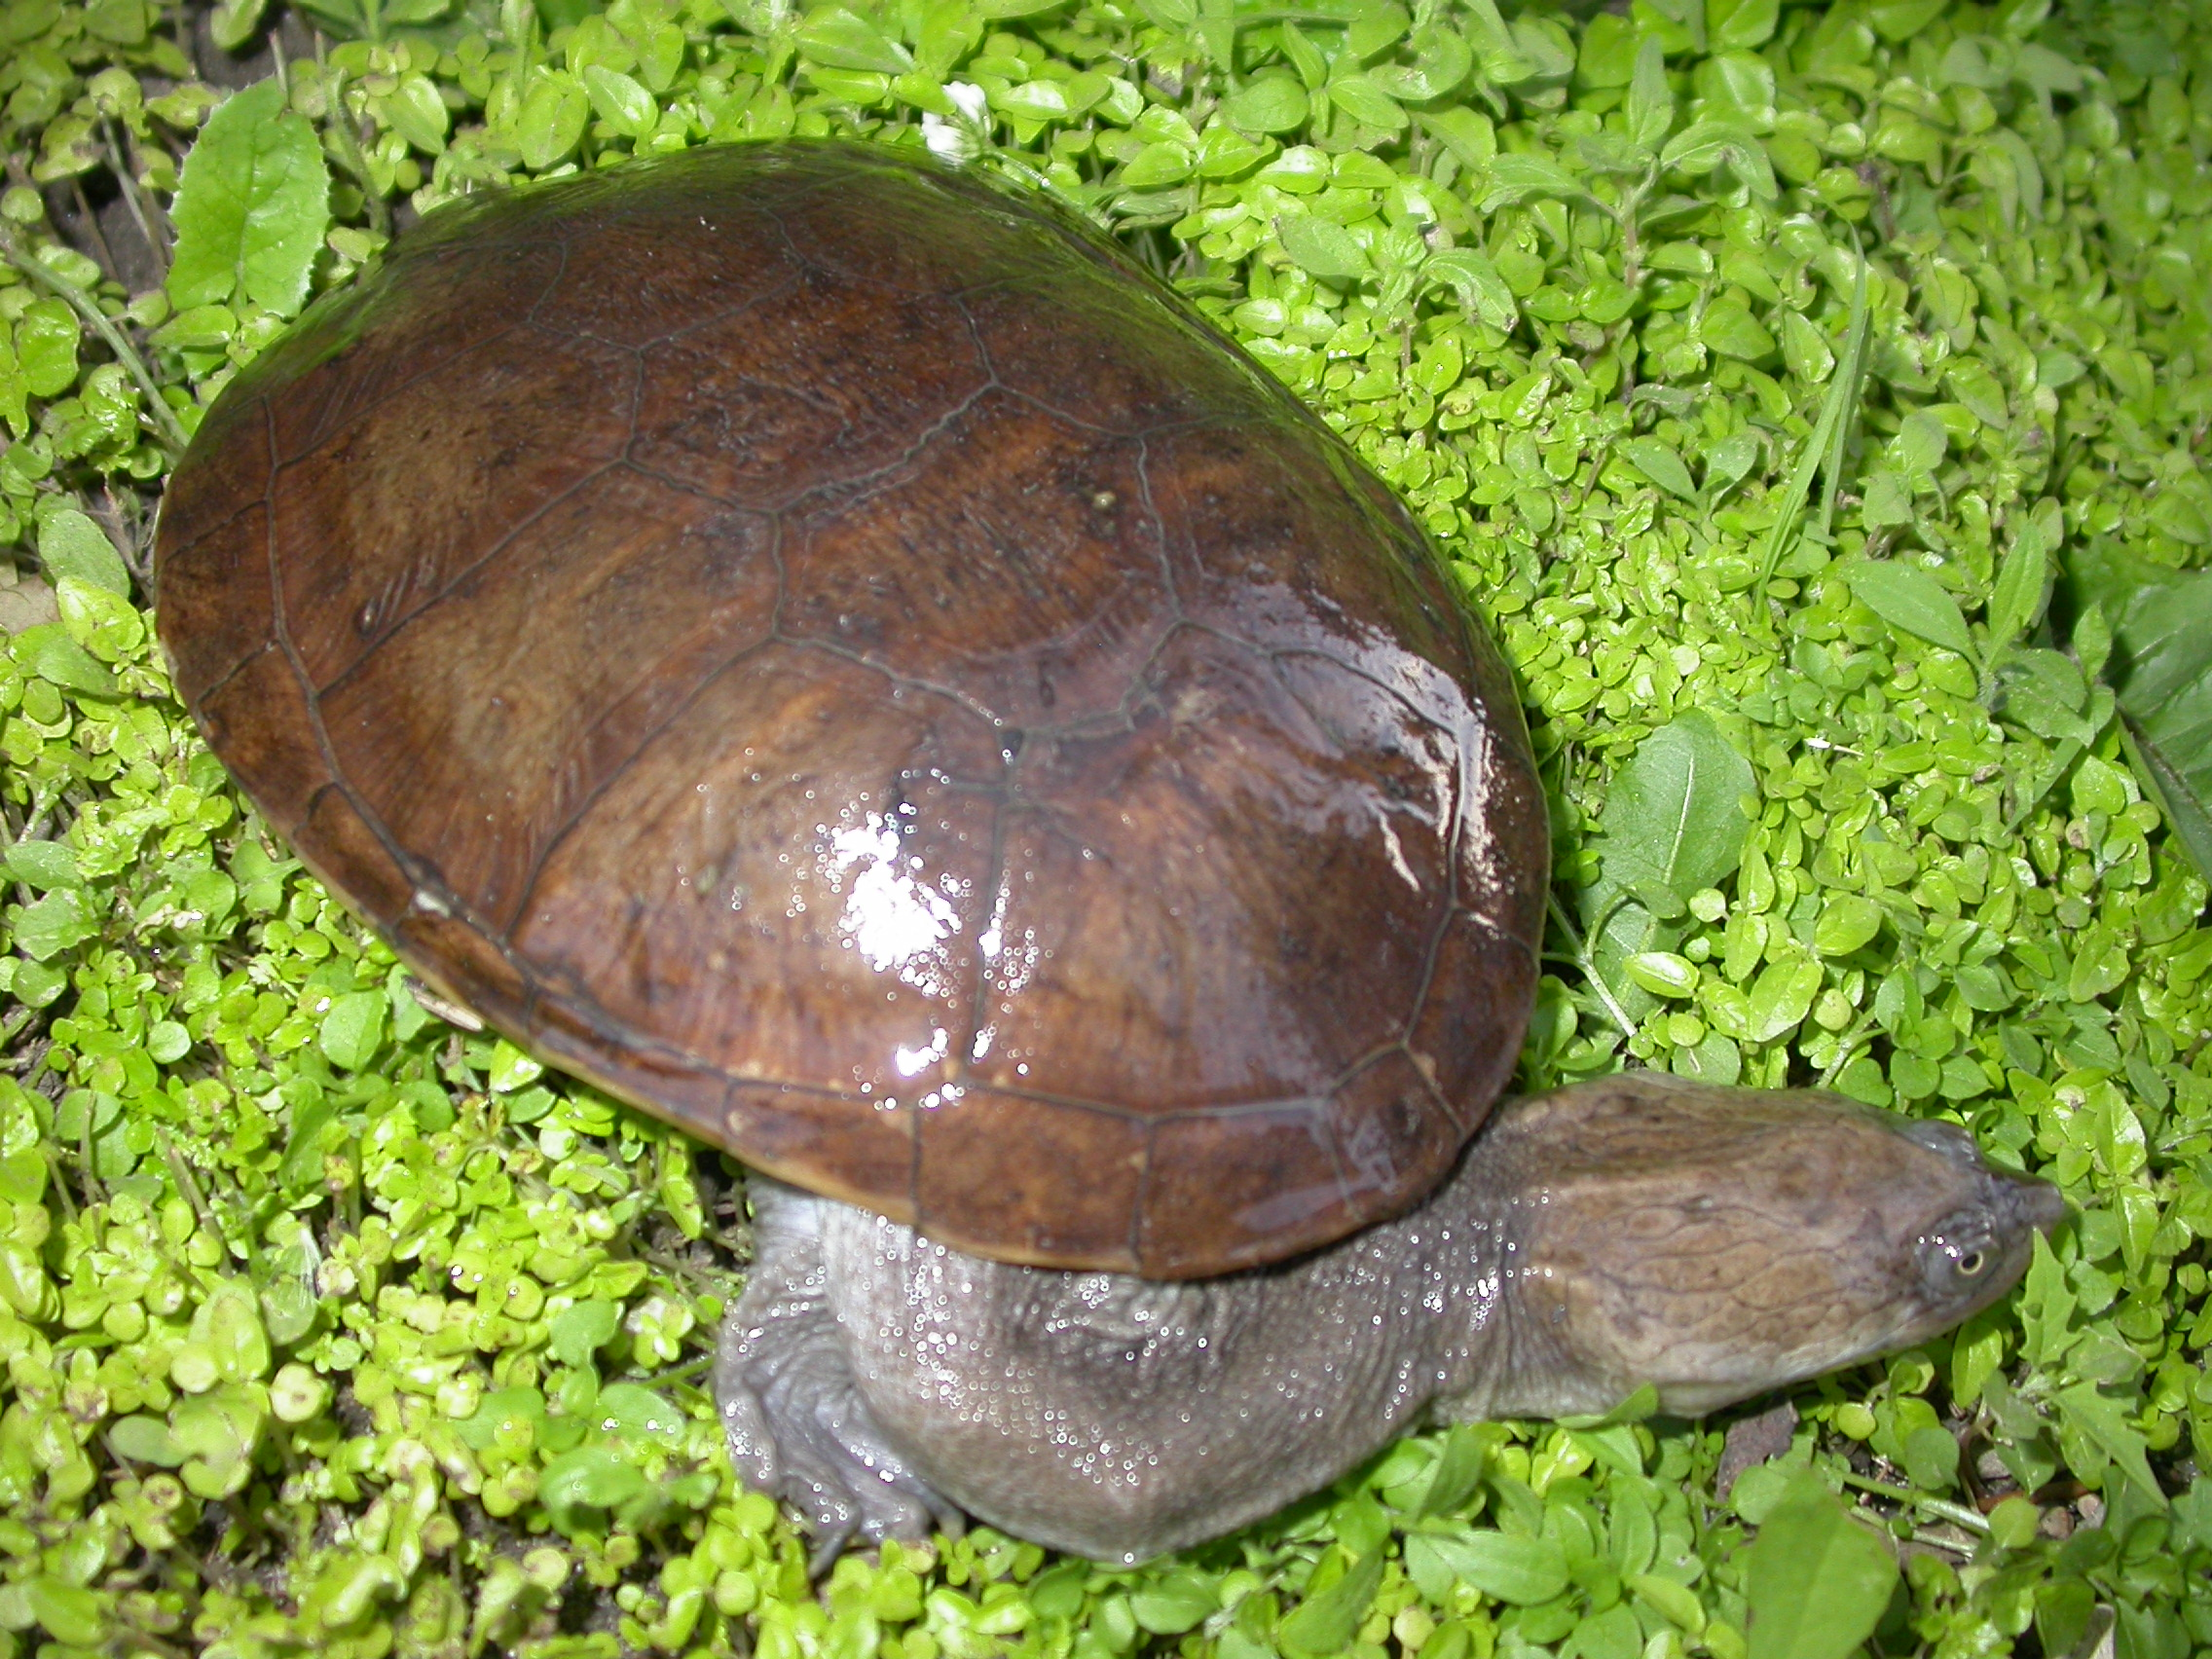 Turtles & Tortoises | Reptile & Amphibian Discovery Zoo